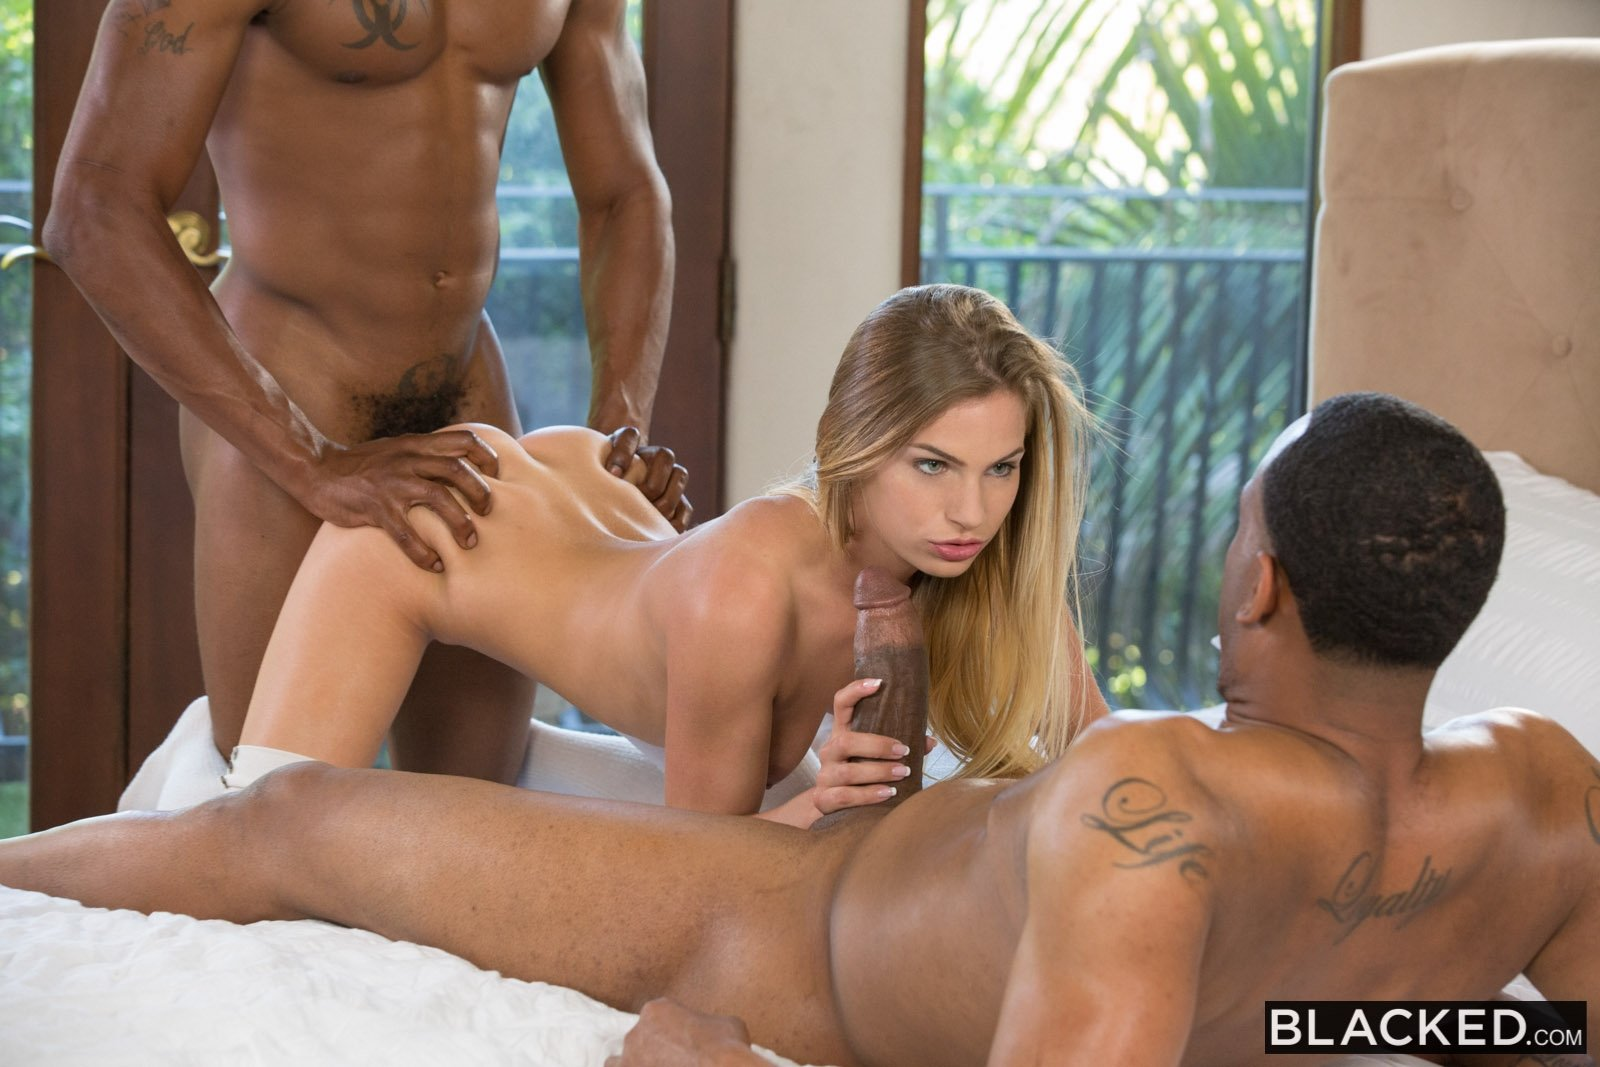 Hot black threesome porn